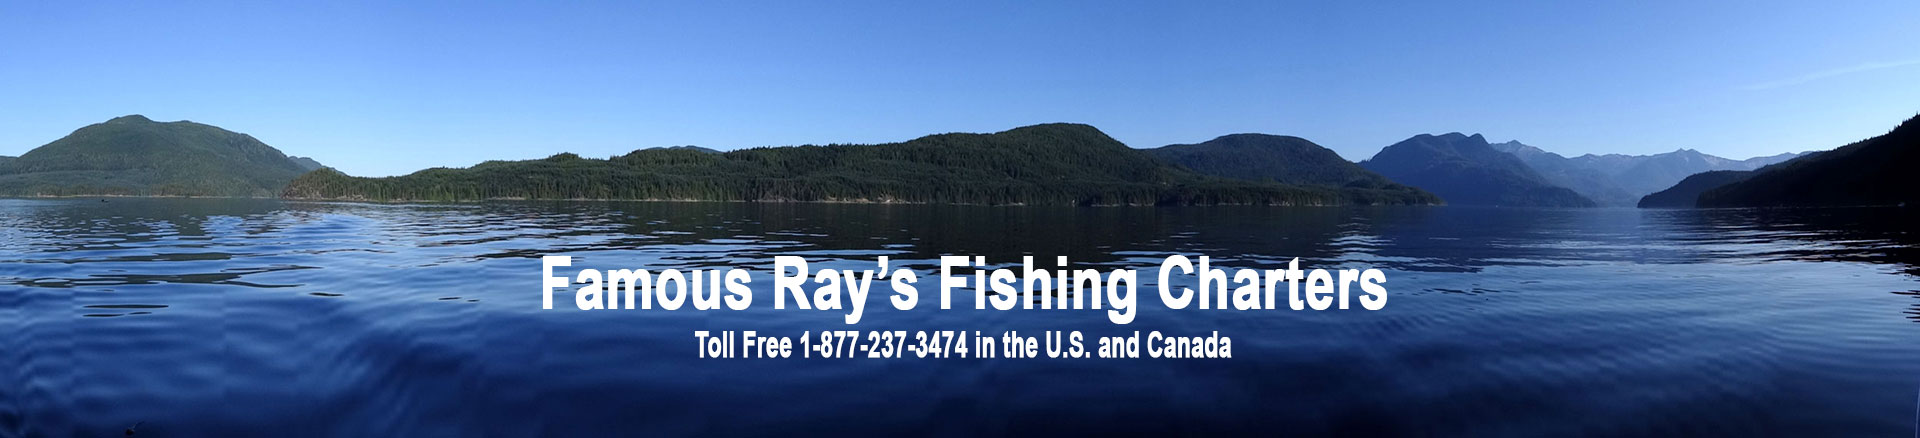 Famous Ray's Fishing Charters - Campbell River, BC